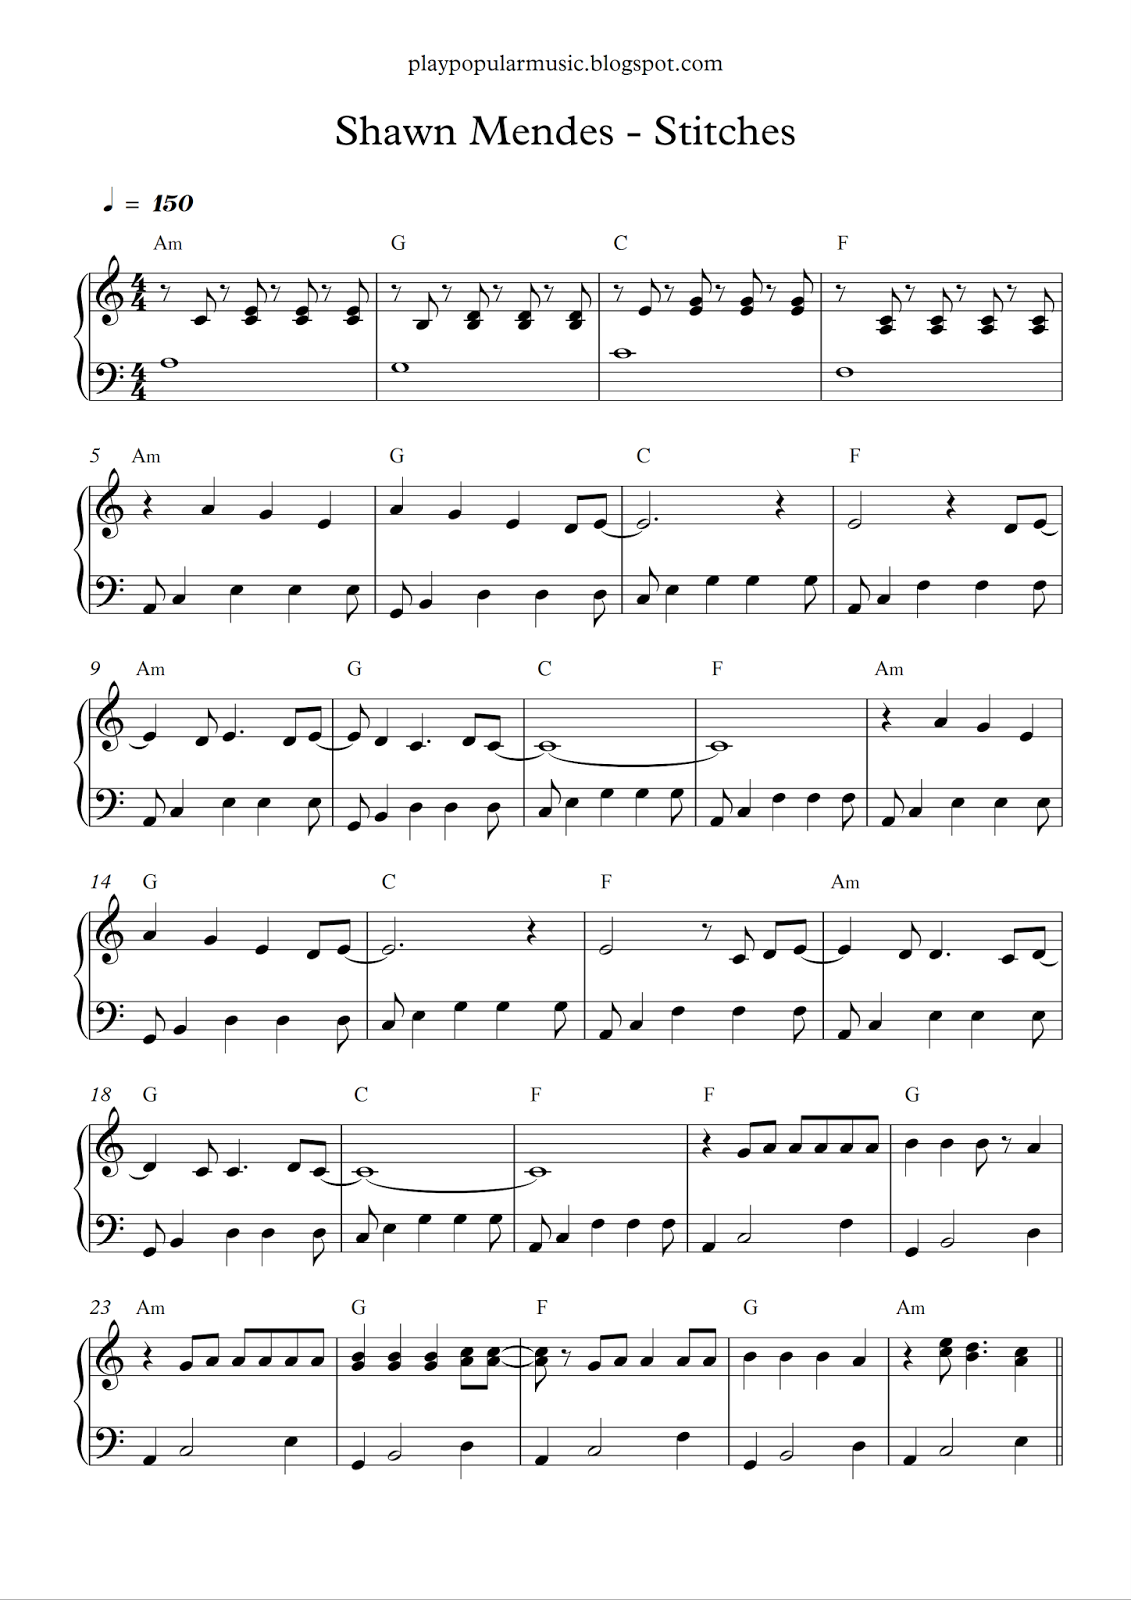 Free piano sheet music: Shawn Mendes - Stitches pdf N ow